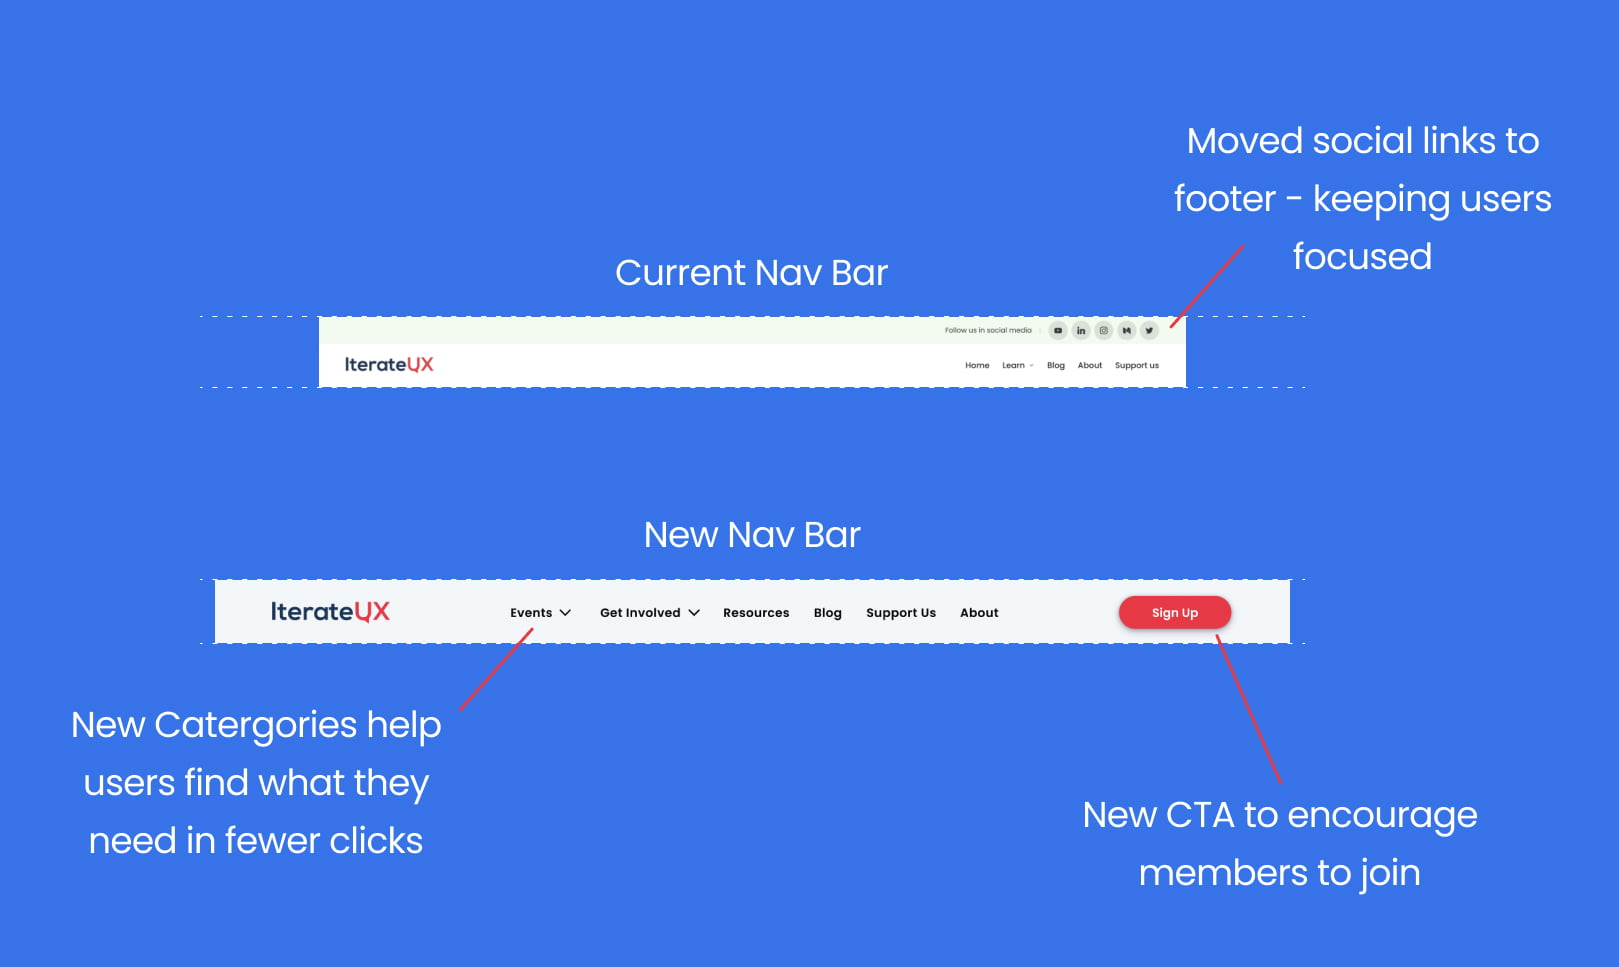 Comparing old nav bar which didn't surface many pages with a new nav bar which work better